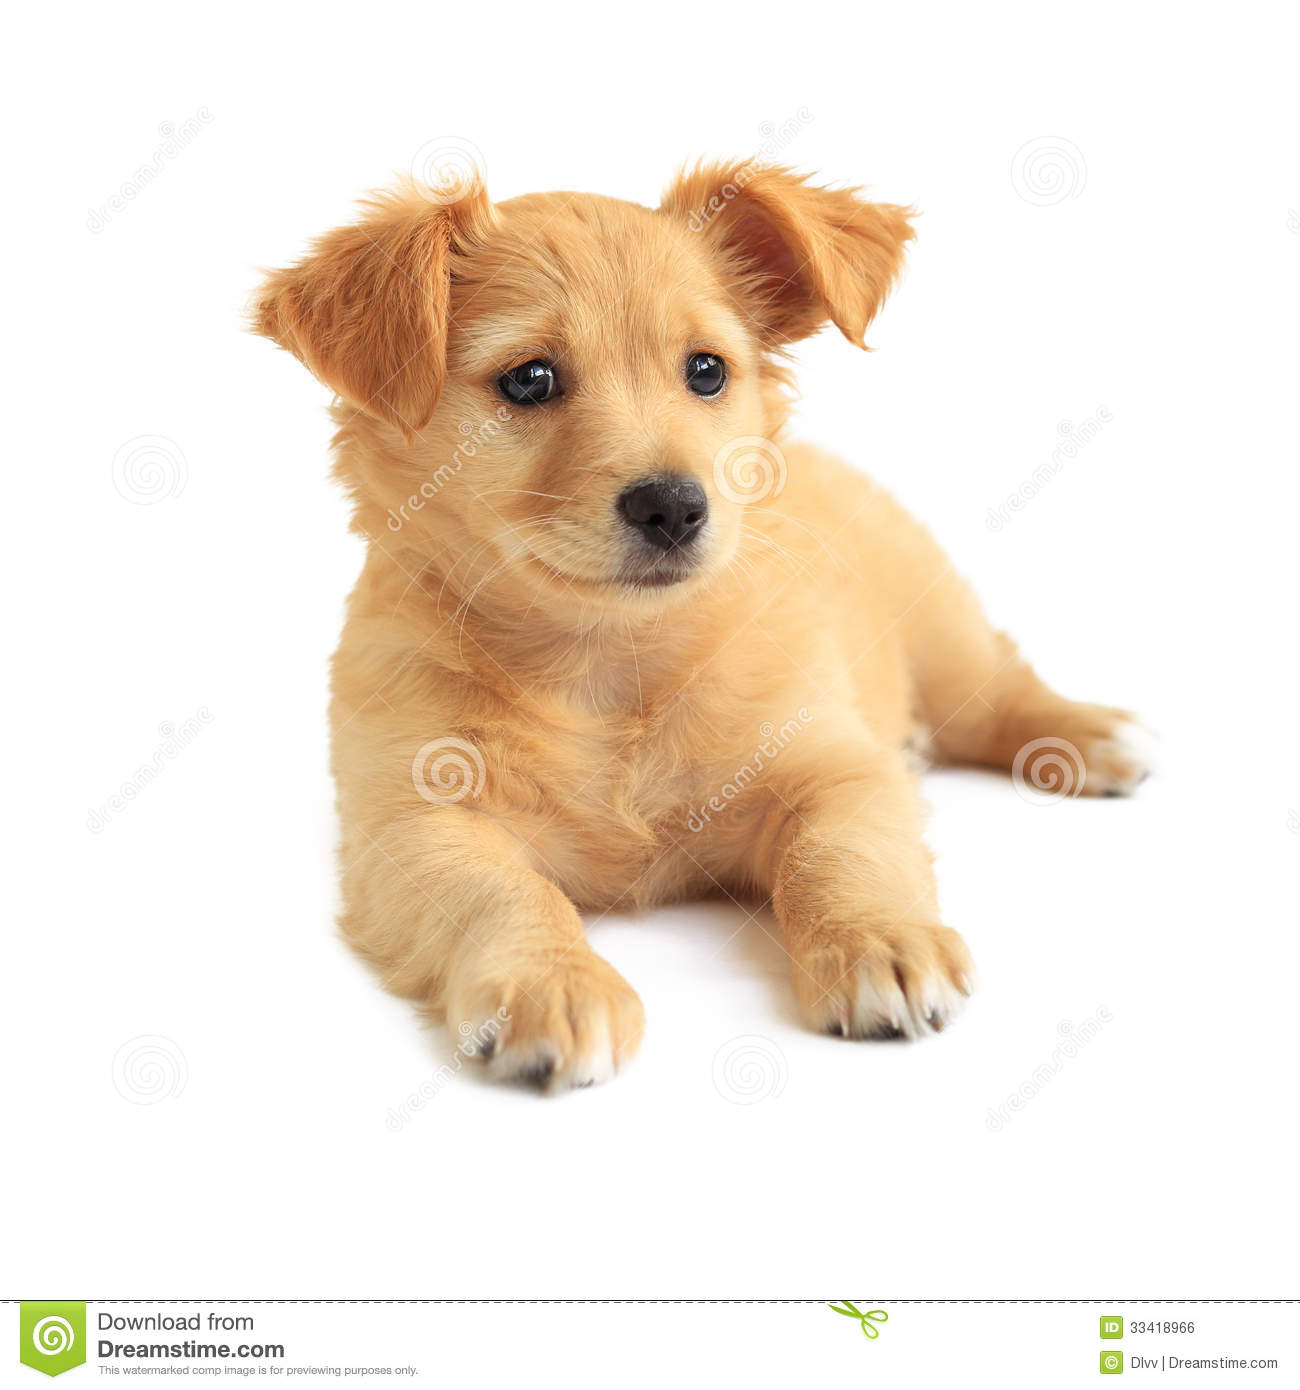 Cute Golden Retriever Mixed Breed Puppy Stock Photo Image Of Mutt